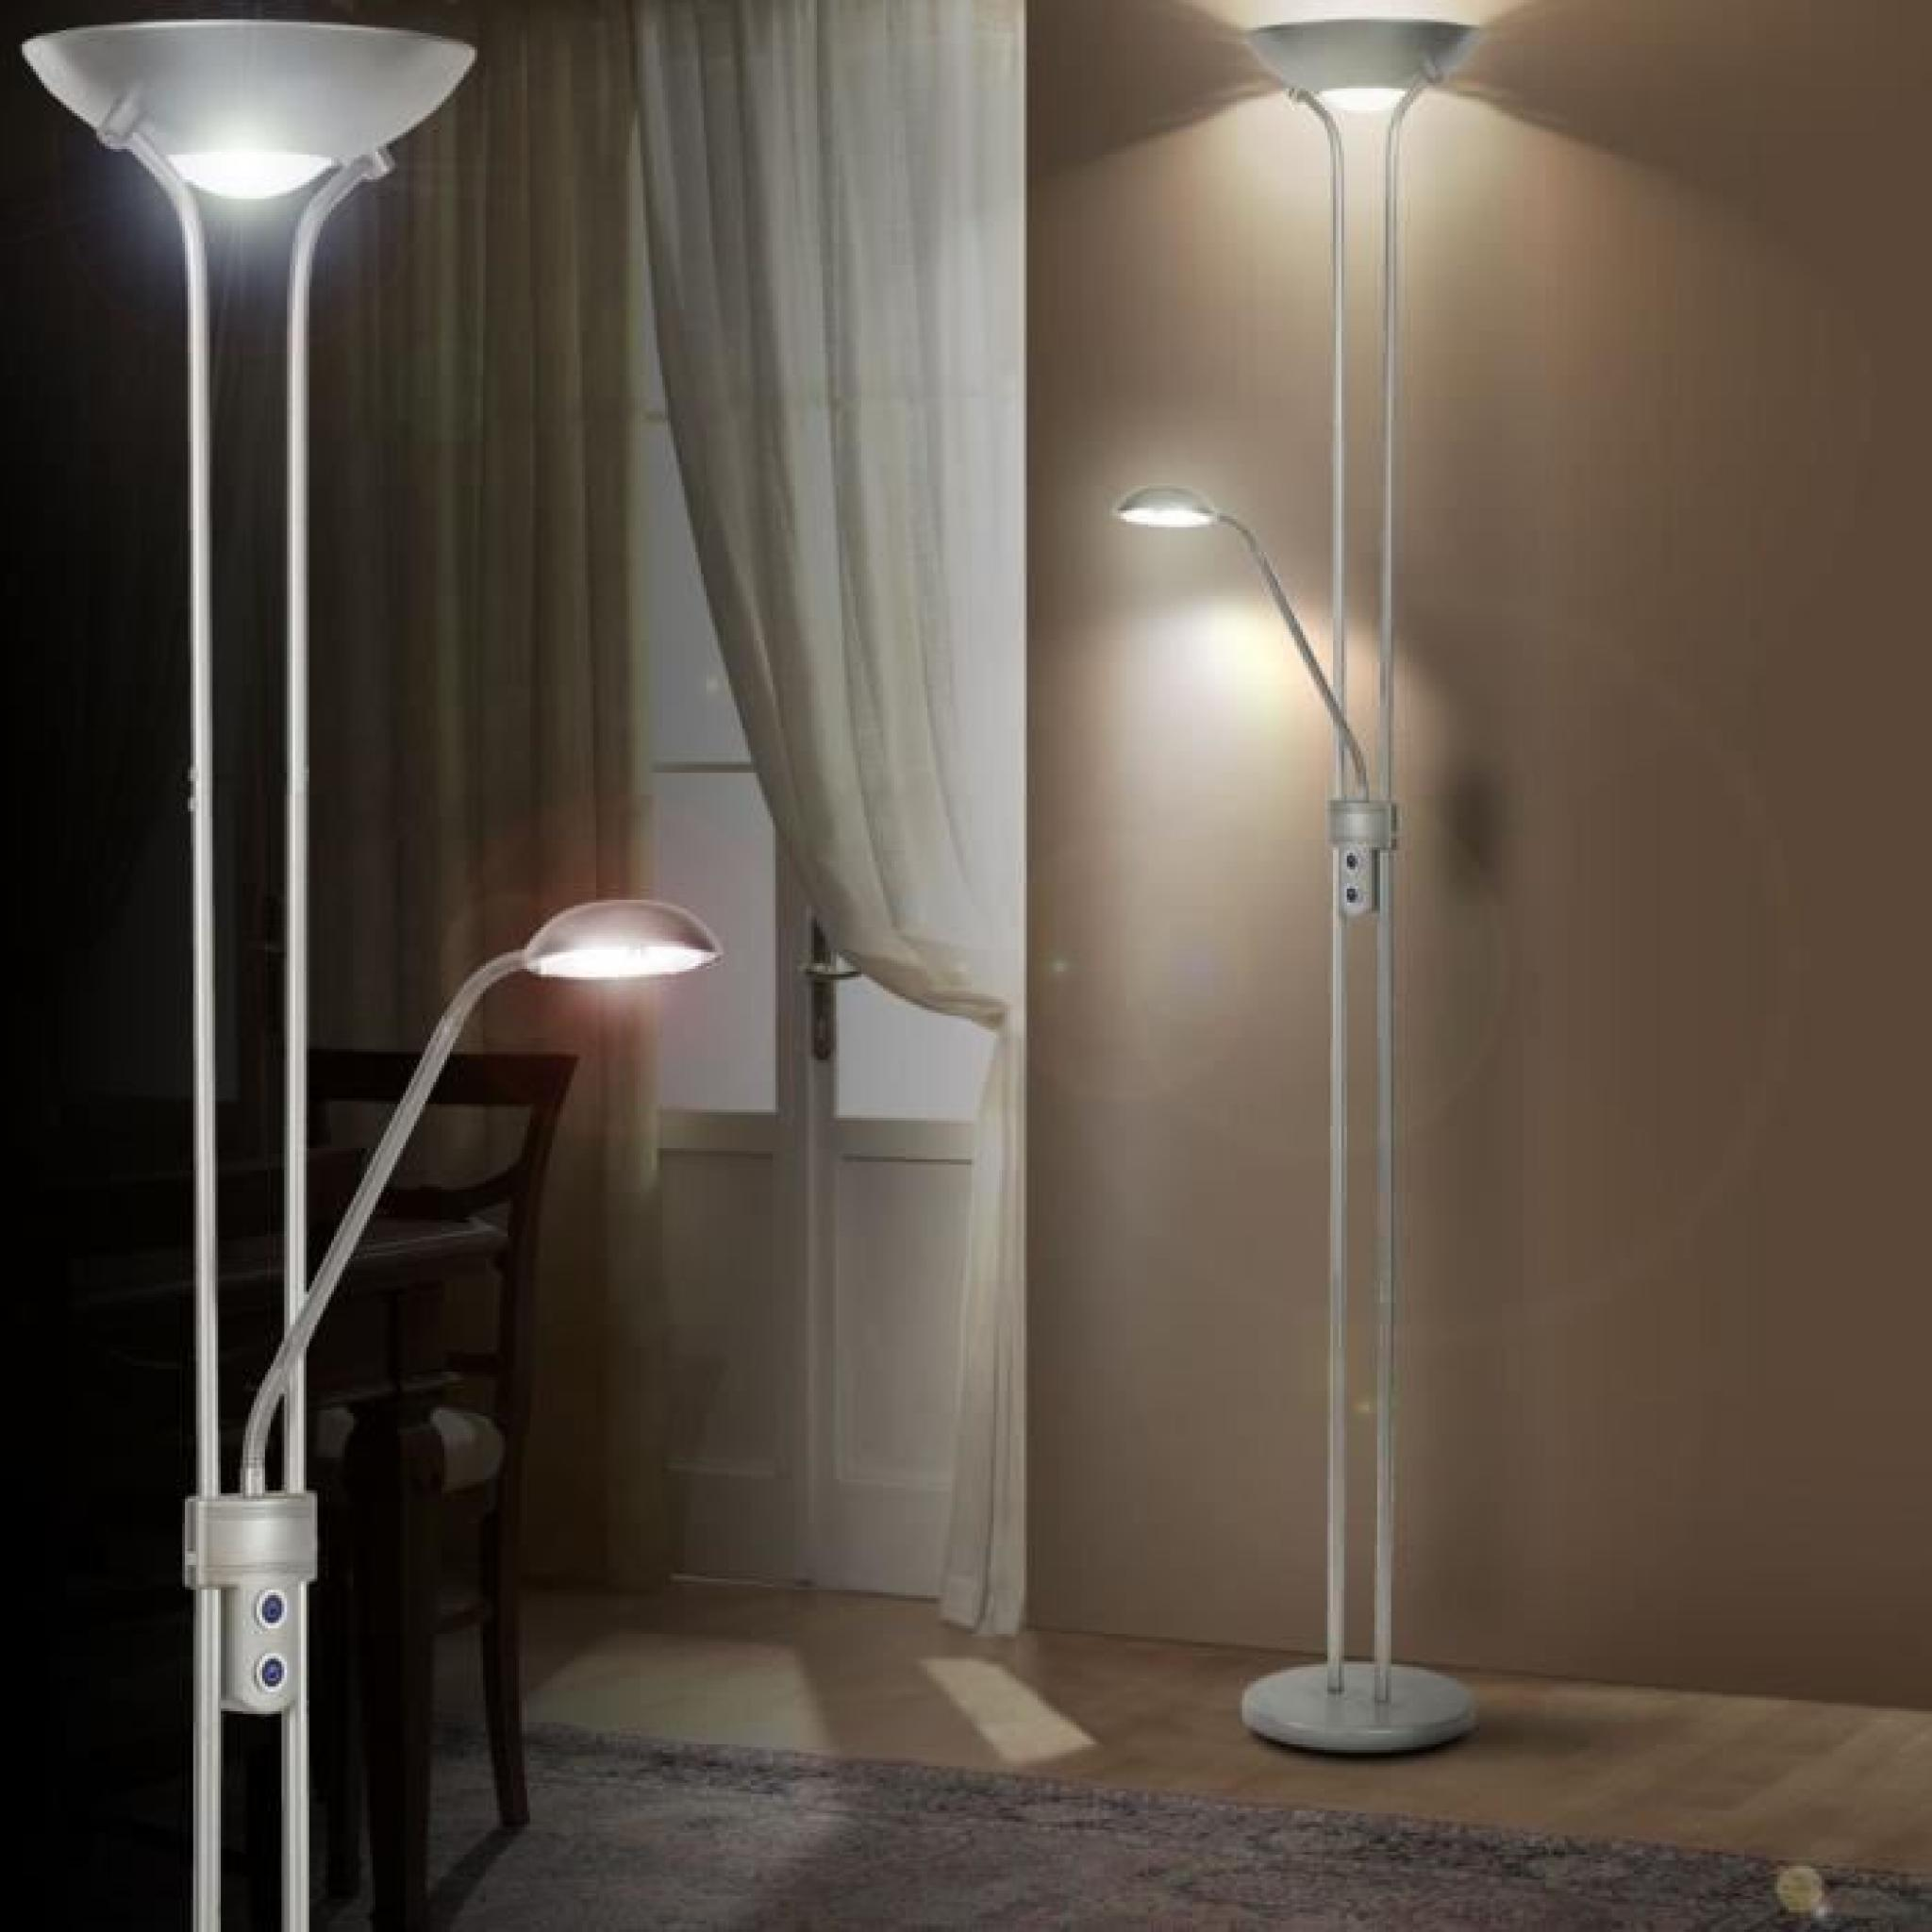 lampadaire led 25 watts luminaire spot interrupteur lampe de lecture salle de s jour achat. Black Bedroom Furniture Sets. Home Design Ideas